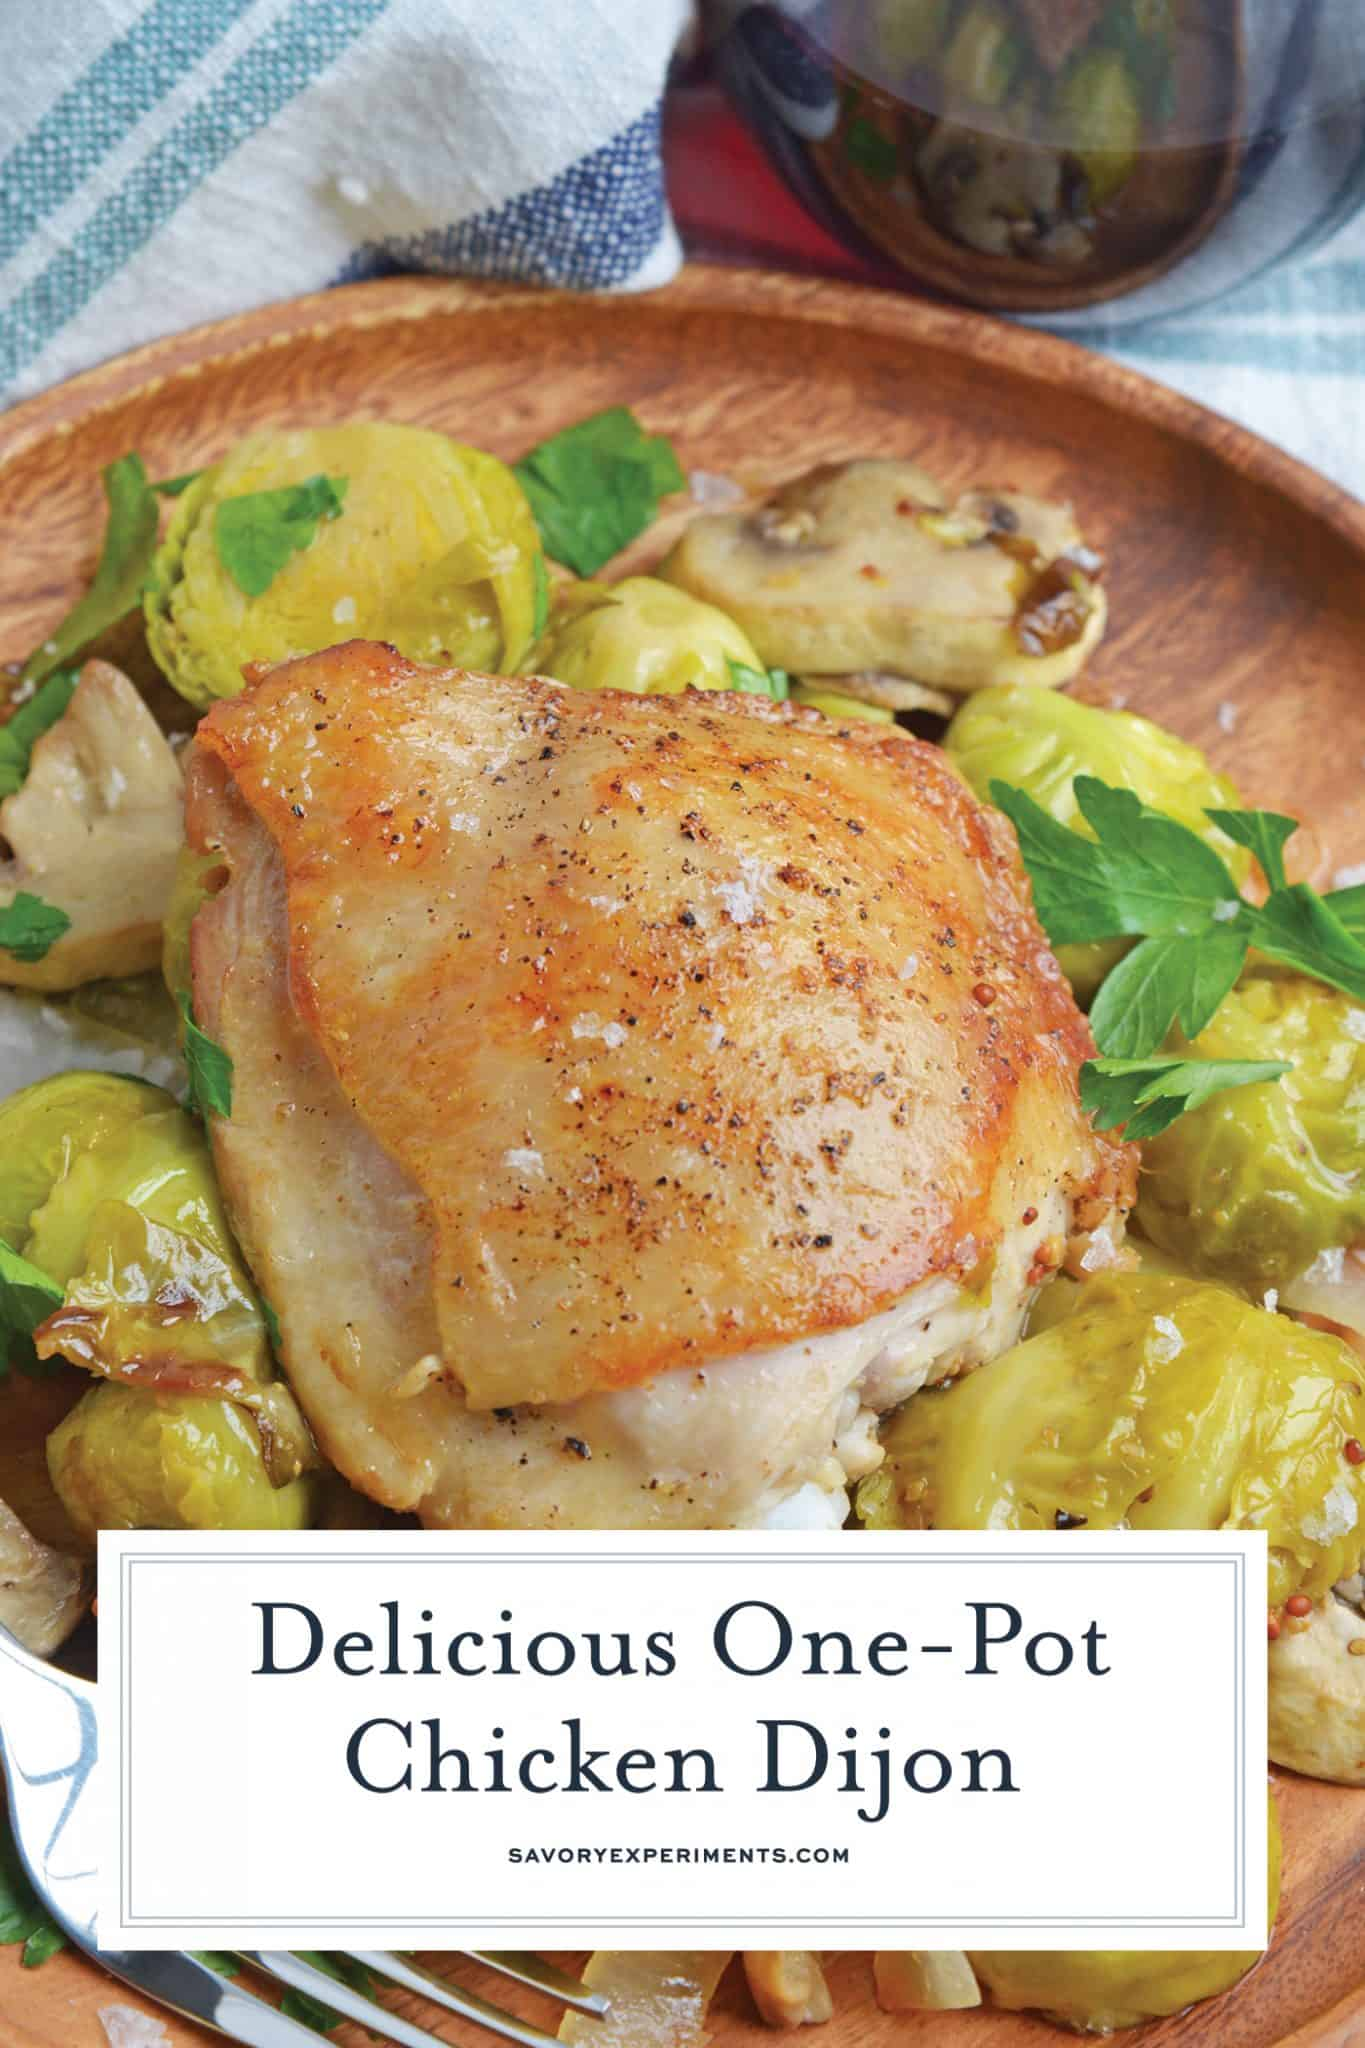 Chicken Dijon is an easy dinner recipe using chicken thighs, mushrooms, brussels sprouts, sweet onions, apple juice and of course, Dijon mustard! #chickendijon #mustardchicken #easychickenrecipe www.savoryexperiments.com